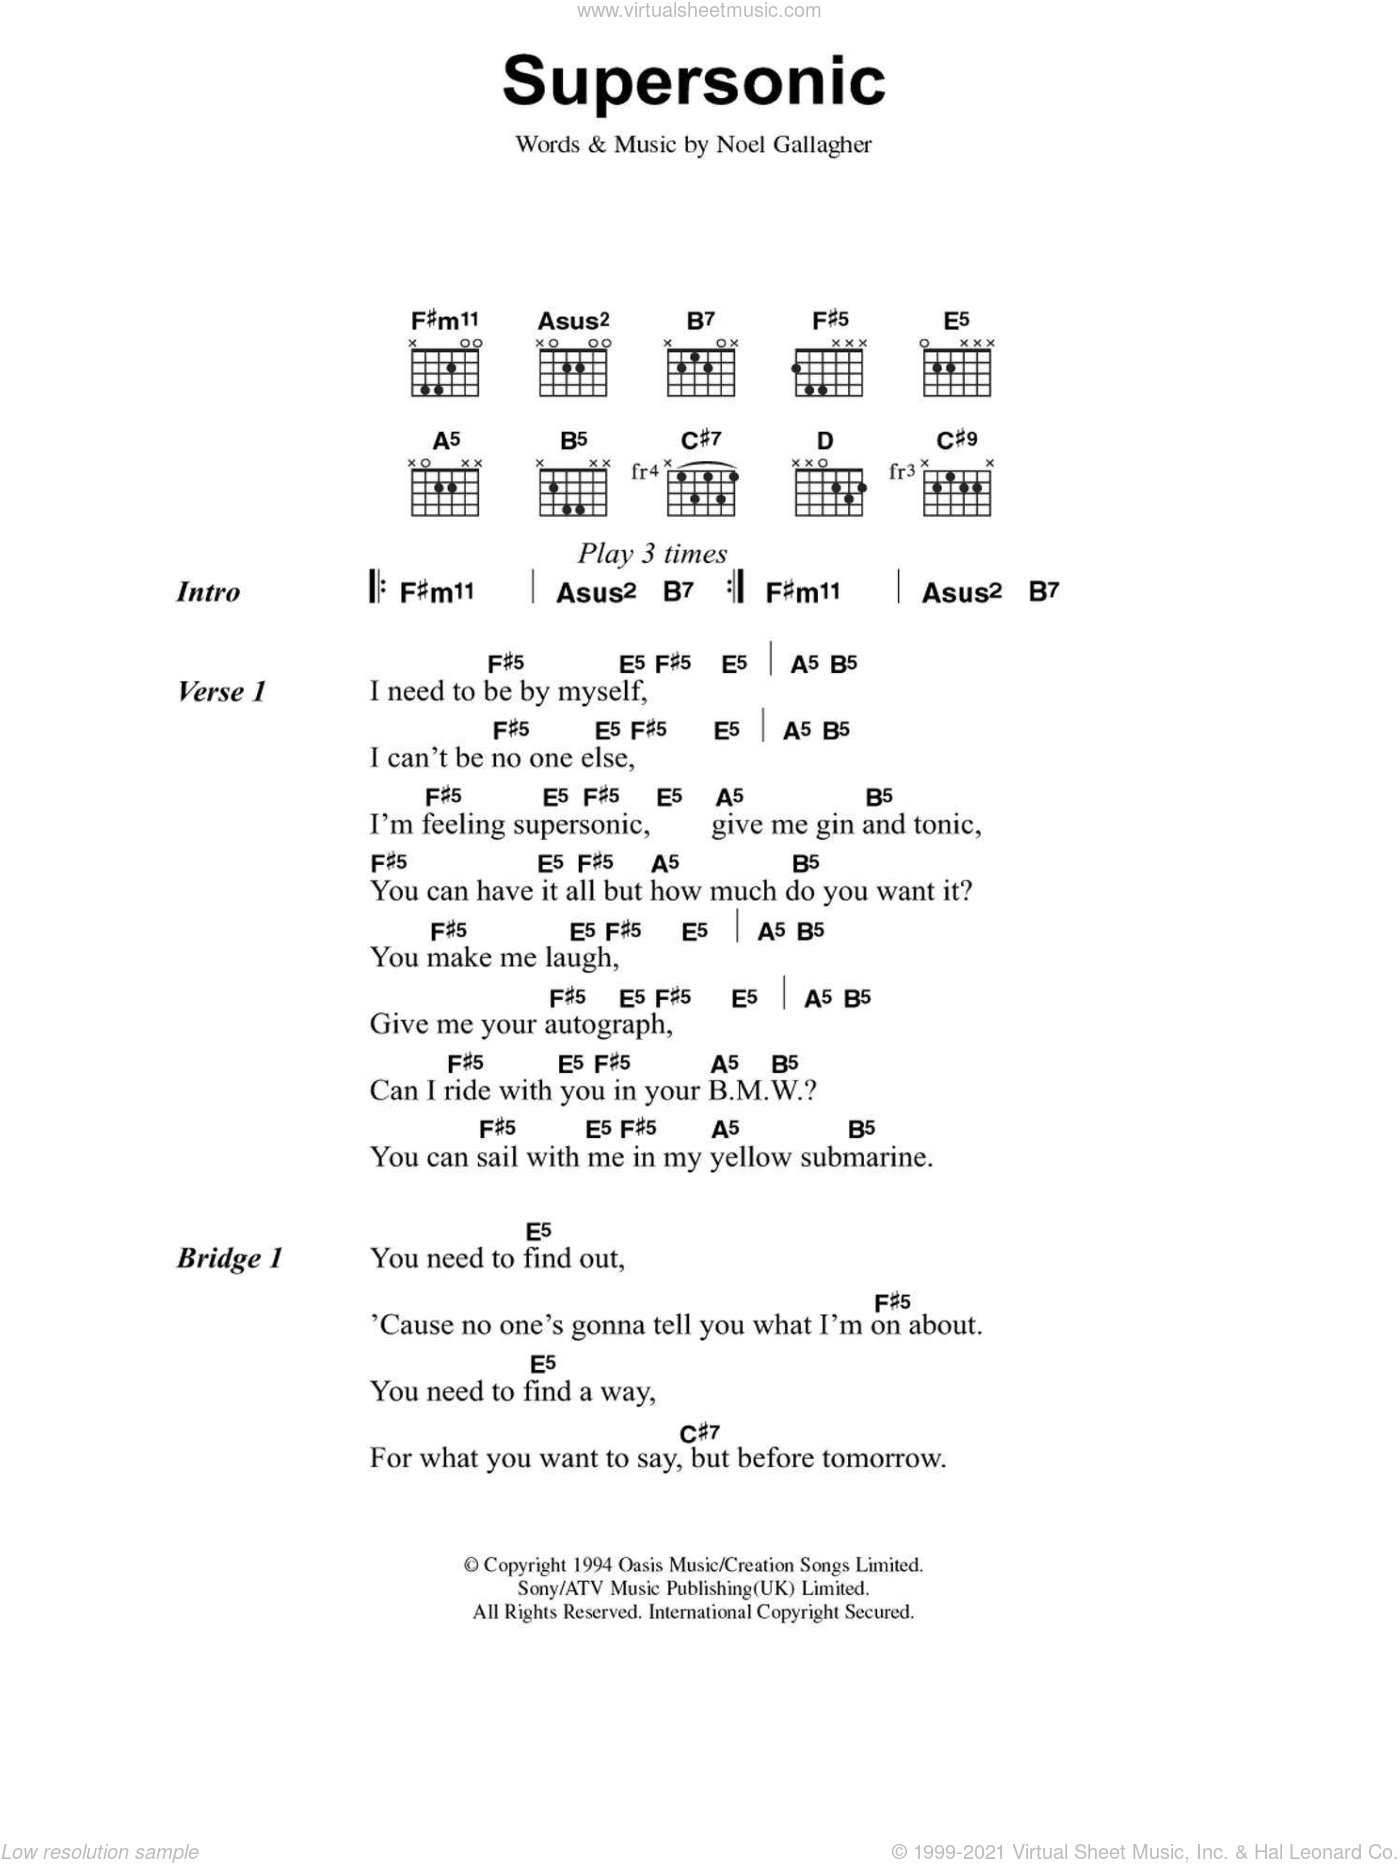 Supersonic sheet music for guitar (chords) by Noel Gallagher